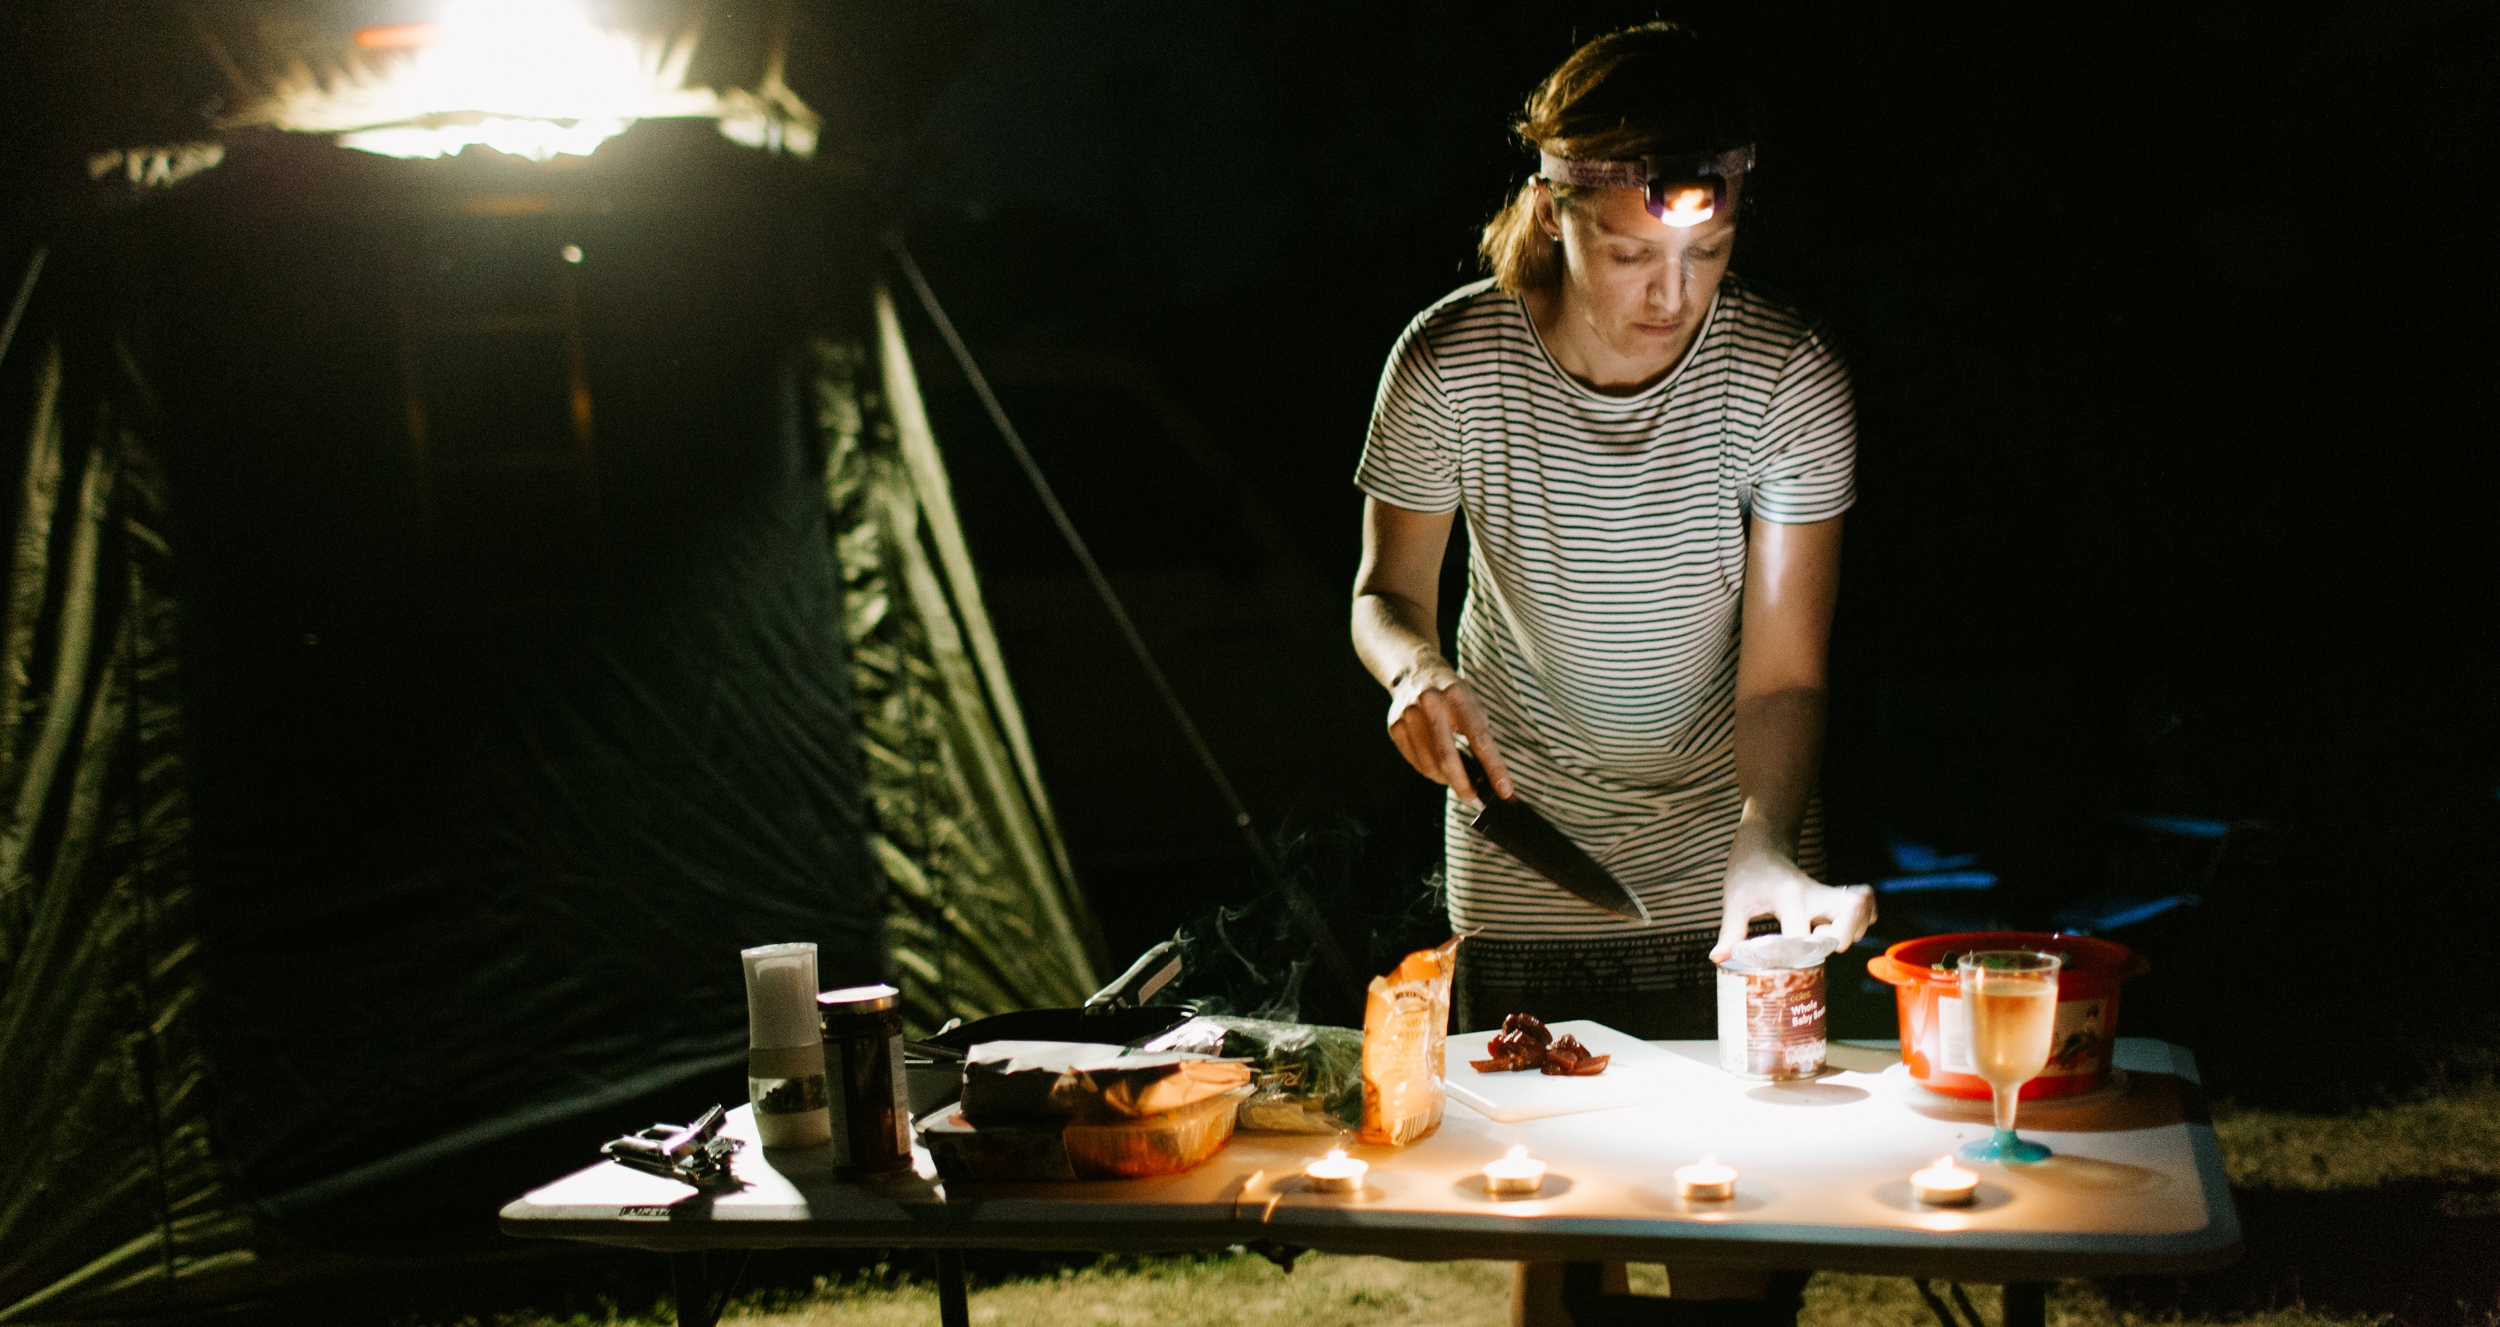 britz-outback-4wd-cooking-at-night